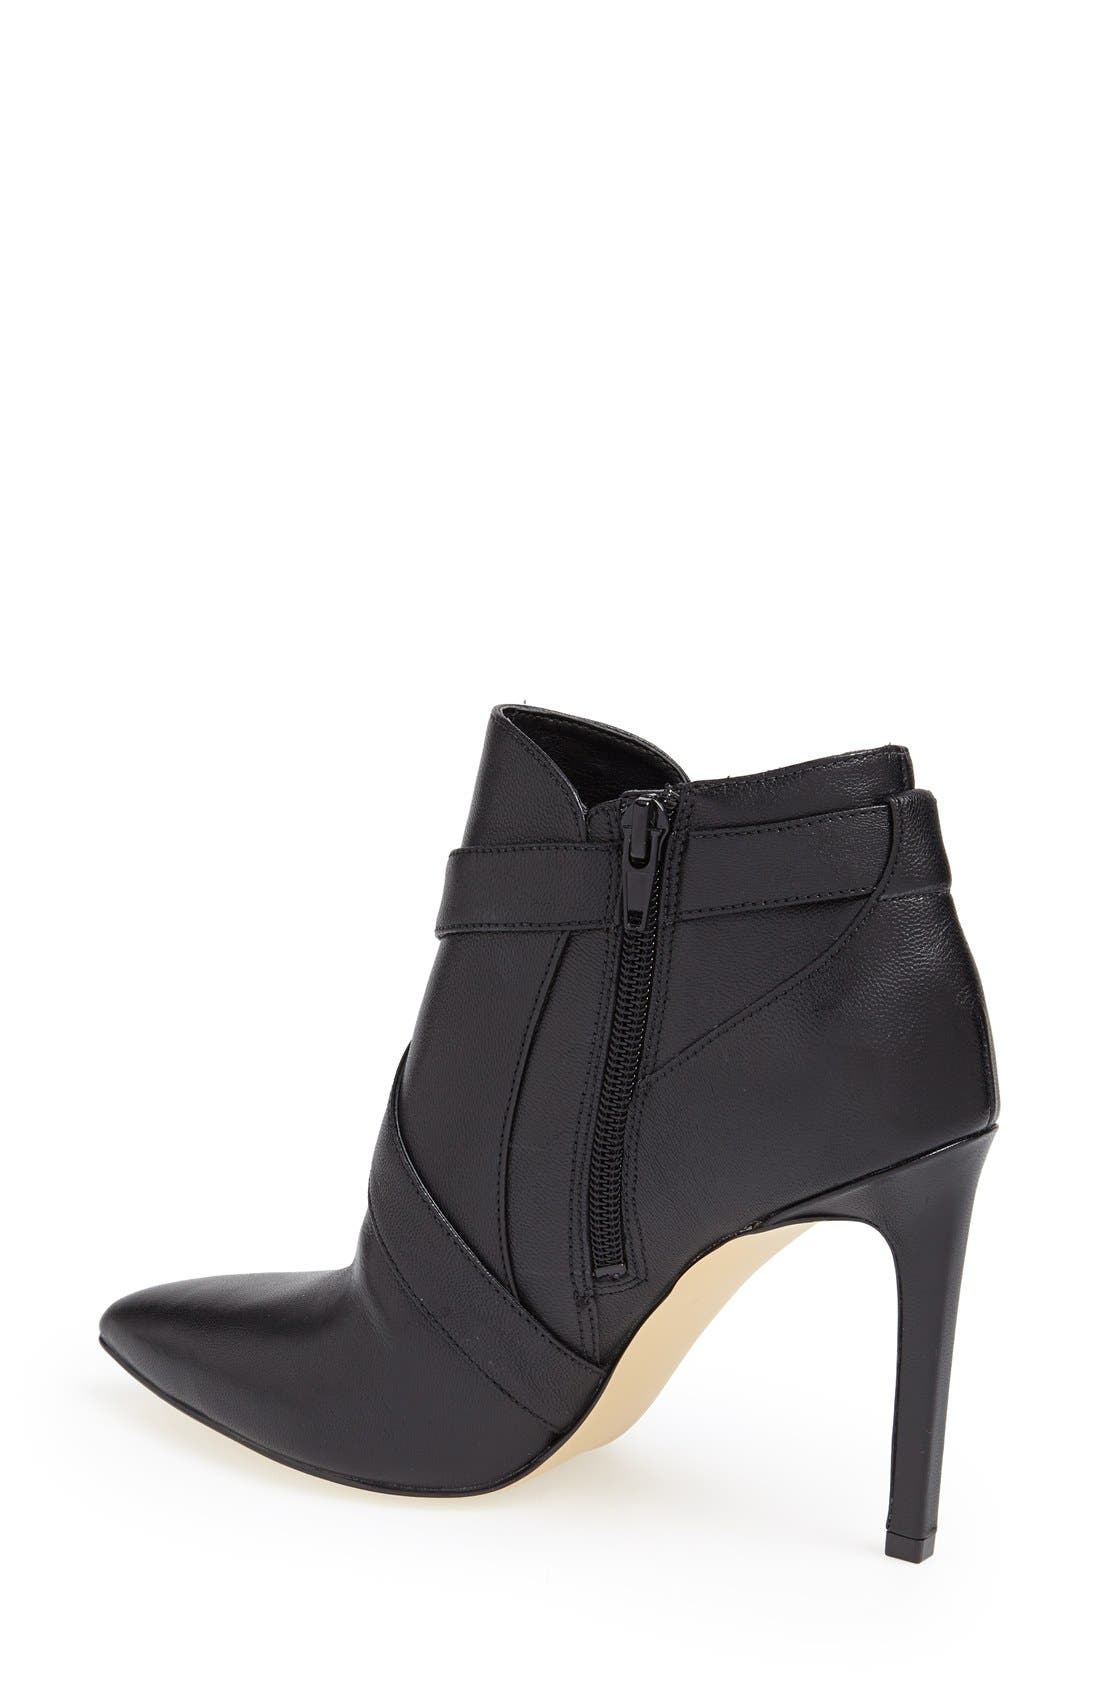 Alternate Image 2  - GUESS 'Valari' Leather Pointy Toe Bootie (Women)